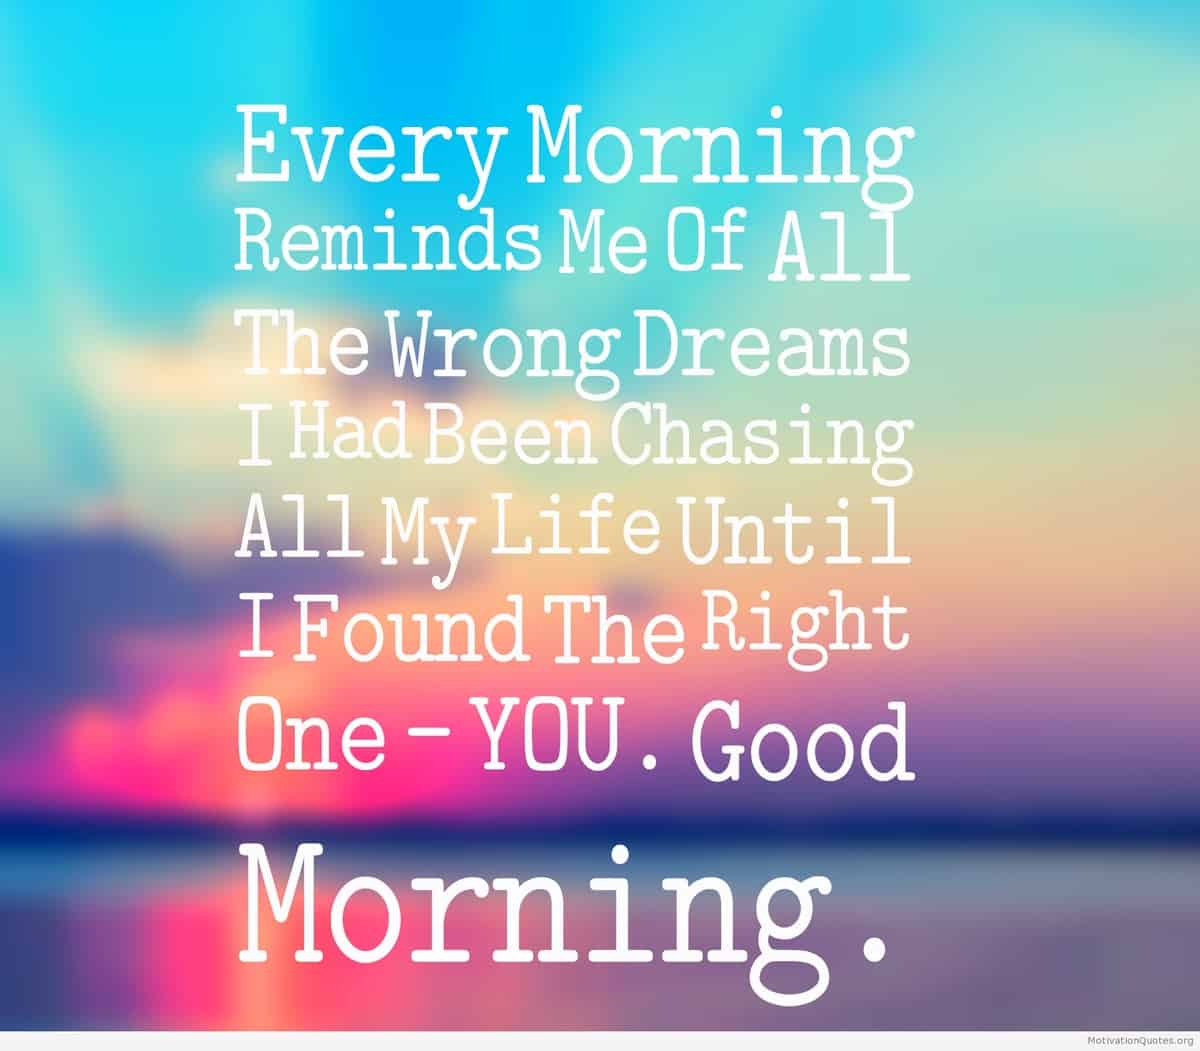 Every Morning Reminds Me Cute Quotes